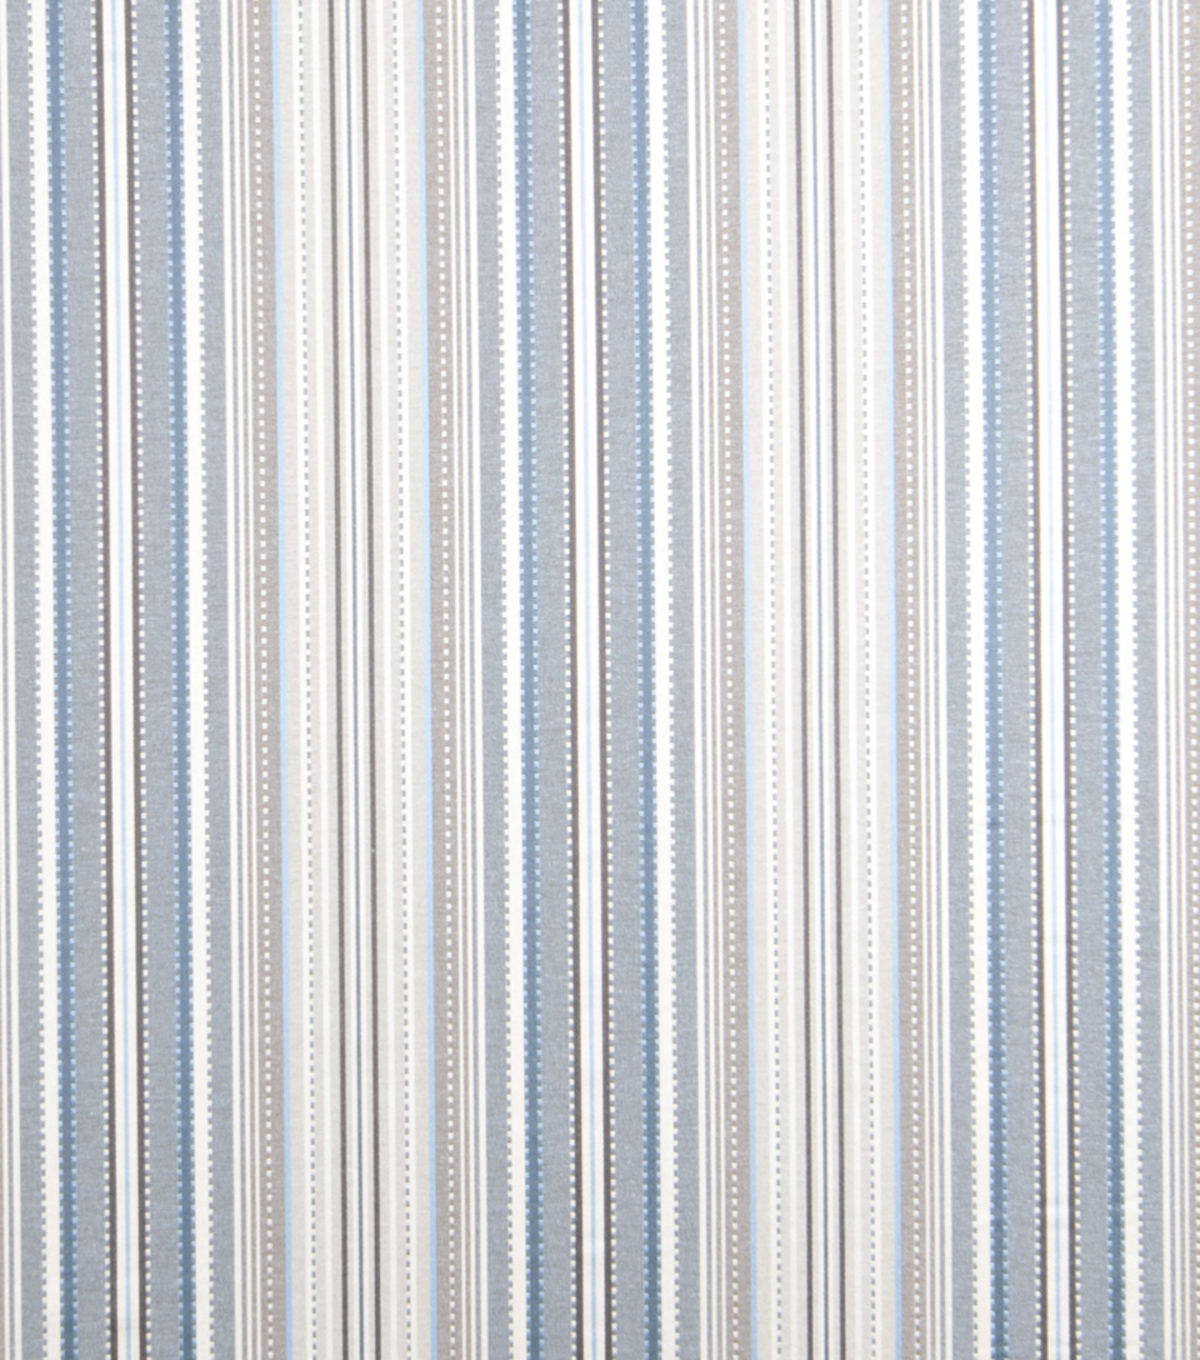 Home Decor 8\u0022x8\u0022 Fabric Swatch-Upholstery Fabric Eaton Square Useful Delft